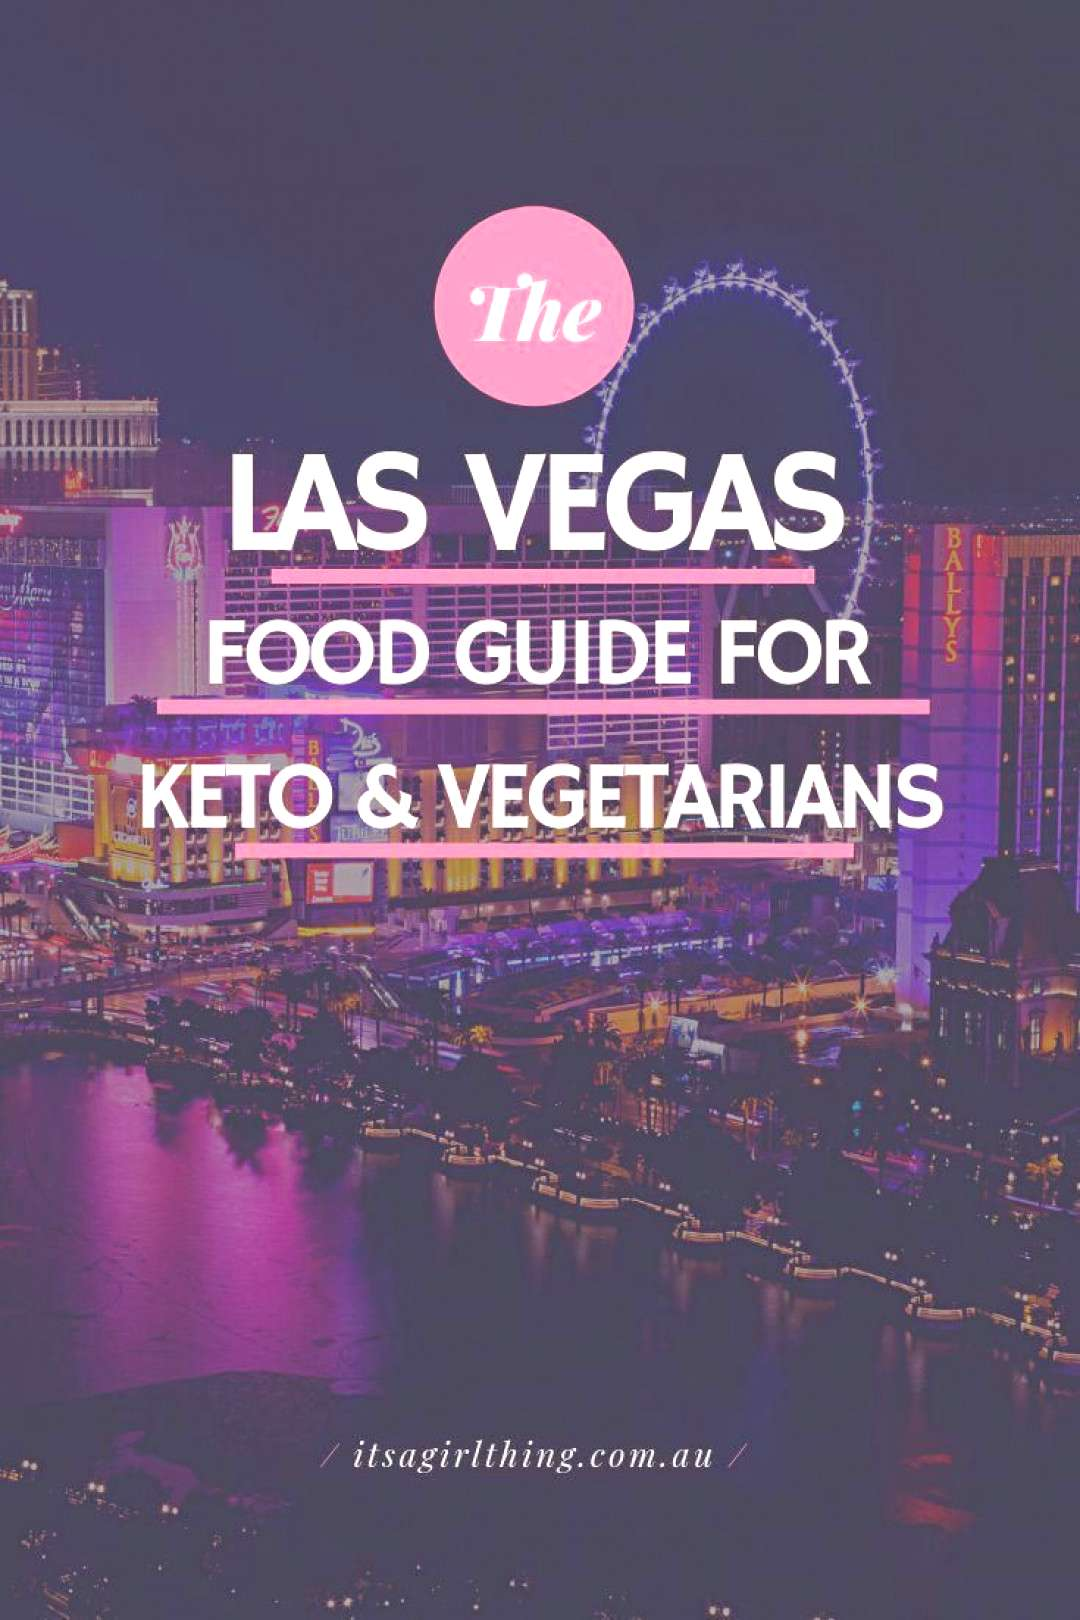 Where should you eat in Las Vegas? What restaurants have vegetarian food or are keto friendly? We'v